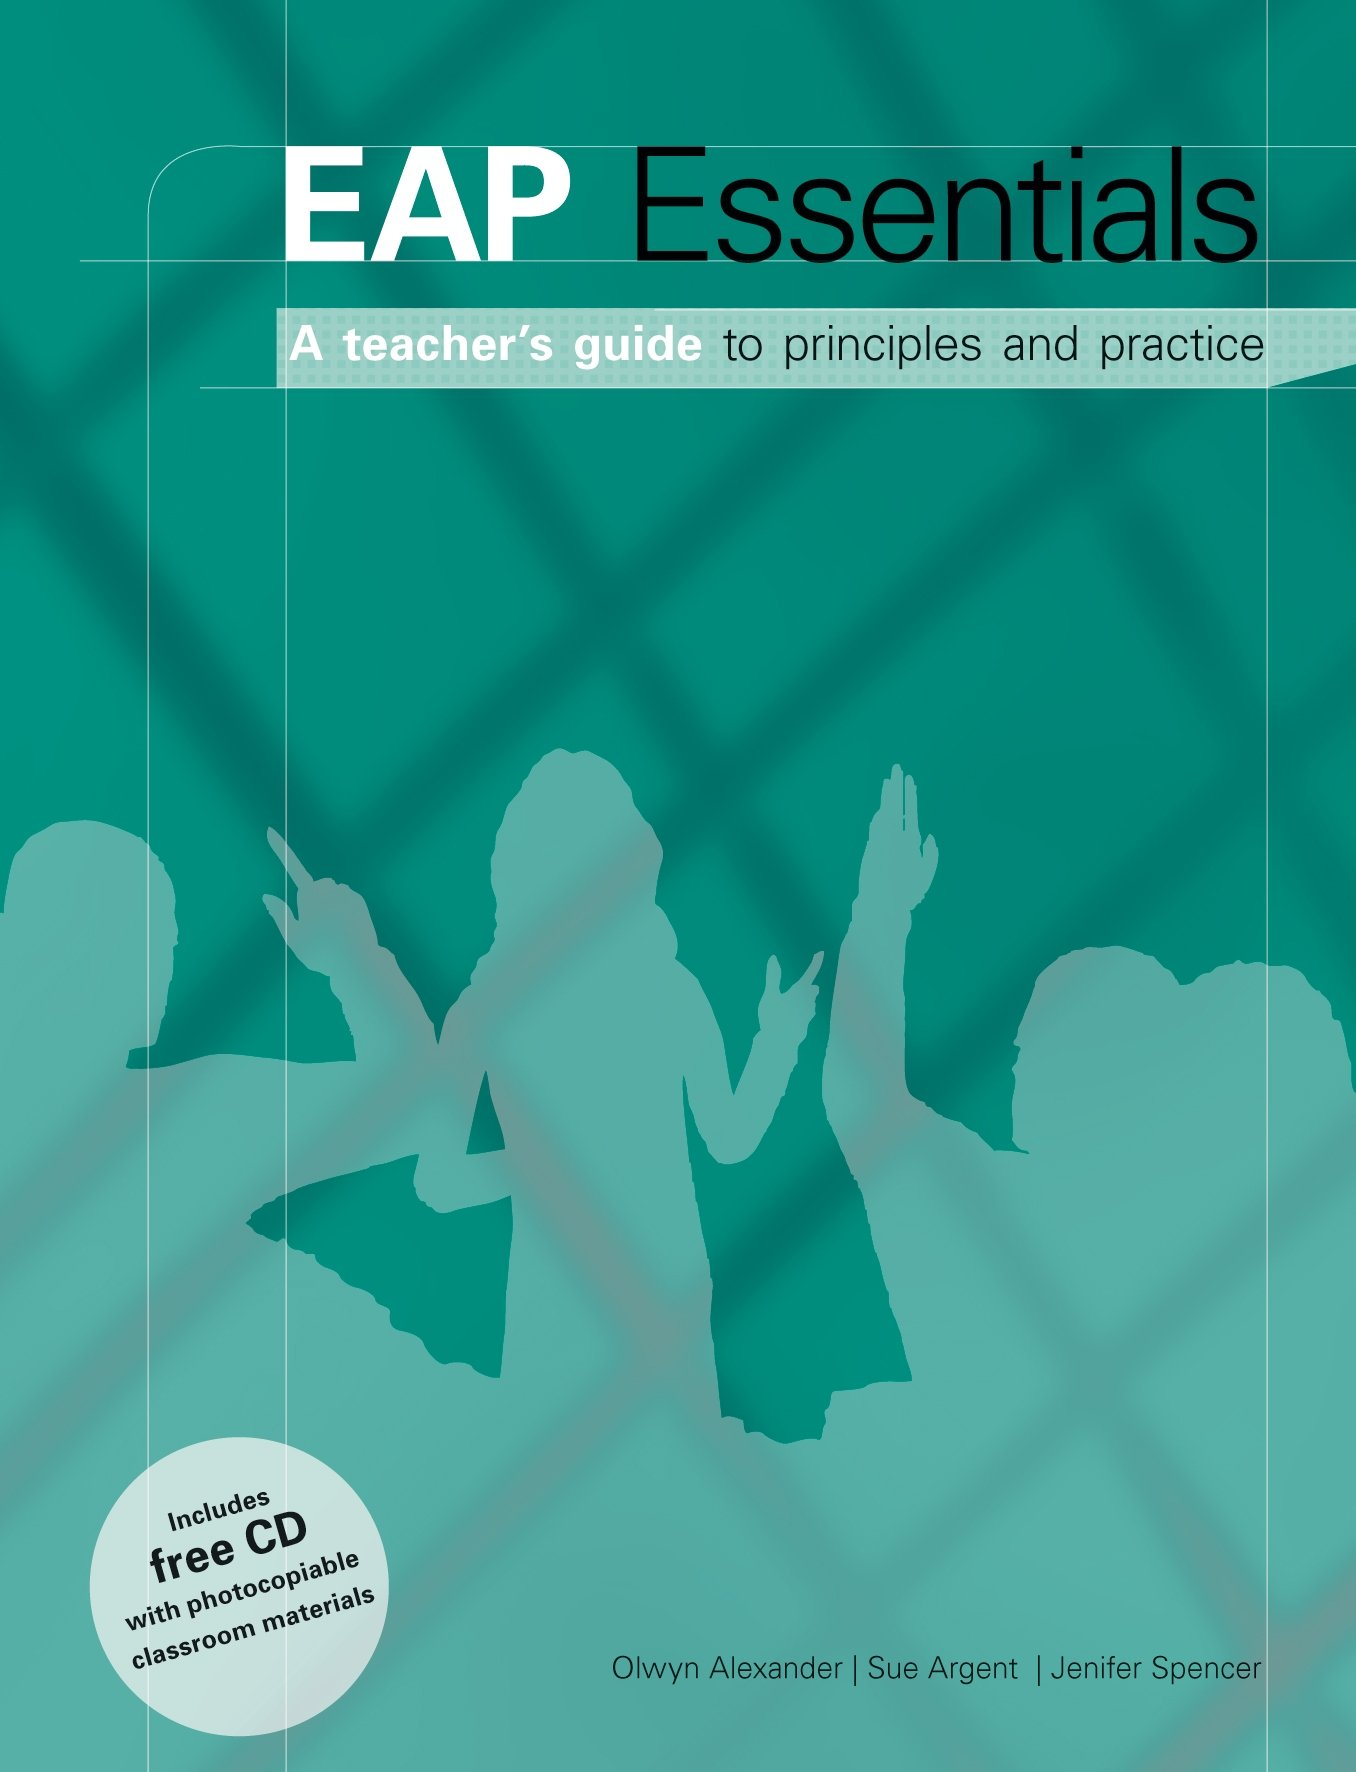 EAP Essentials - A Teachers Guide to Principles & Practice Book + CD: A Teachers Guide to Principles and Practic: Teachers Book and CD-Rom: Amazon.es: Alexander, Olwyn, Argent, Sue, Spencer, Jenifer: Libros